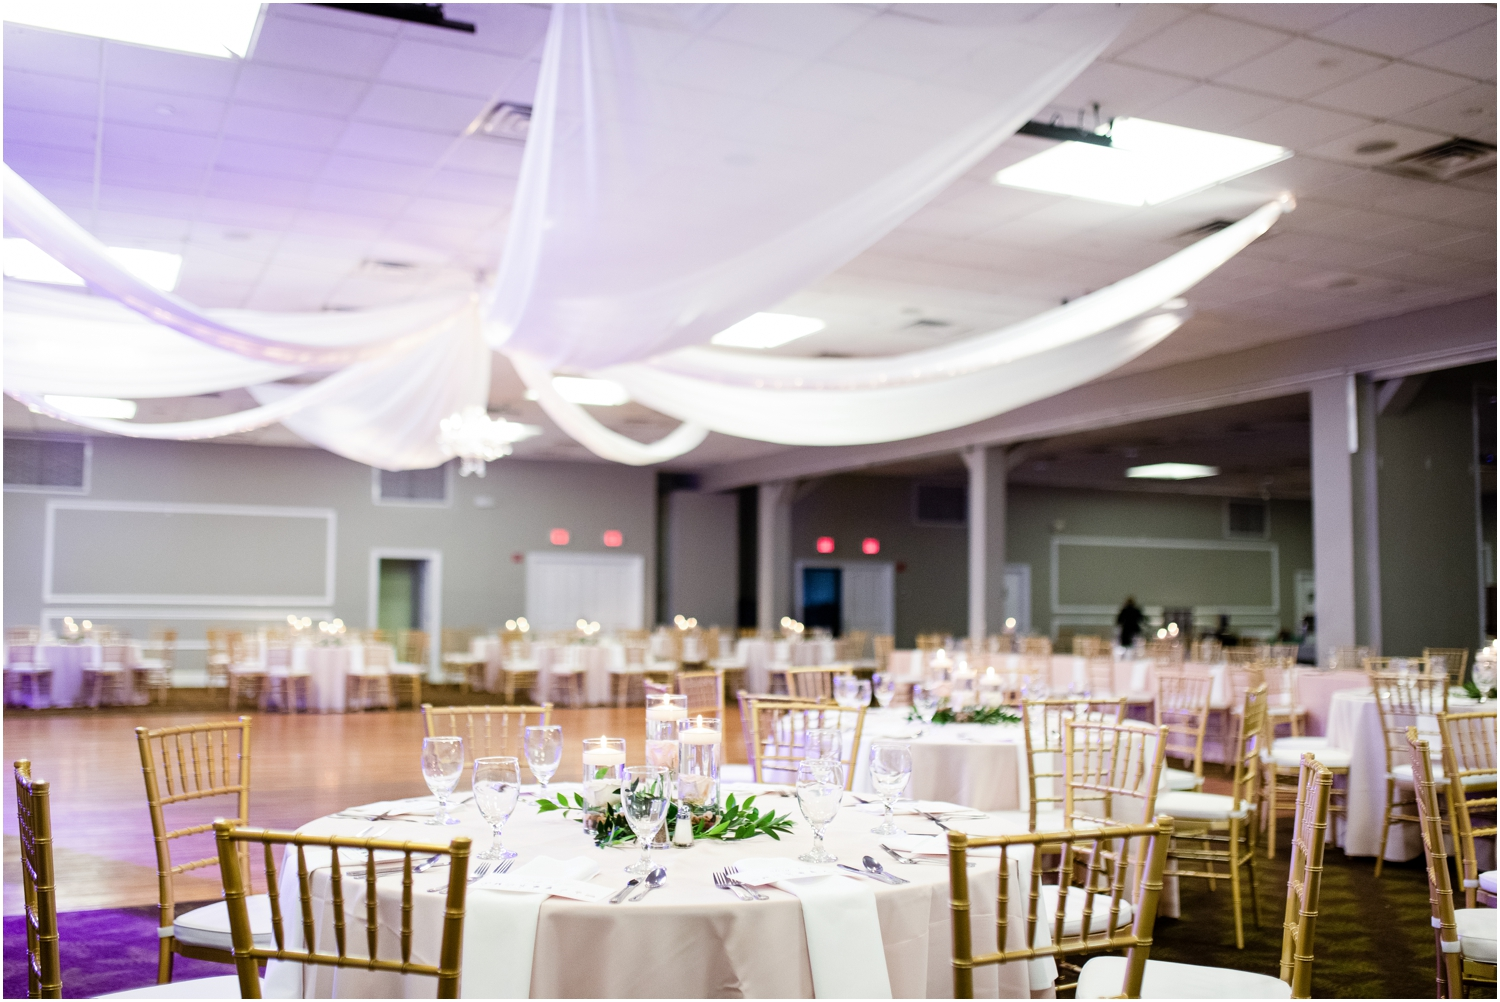 Downtown Pensacola Florida Live Oak Plantation New World Landing Wedding Reception wedding walls